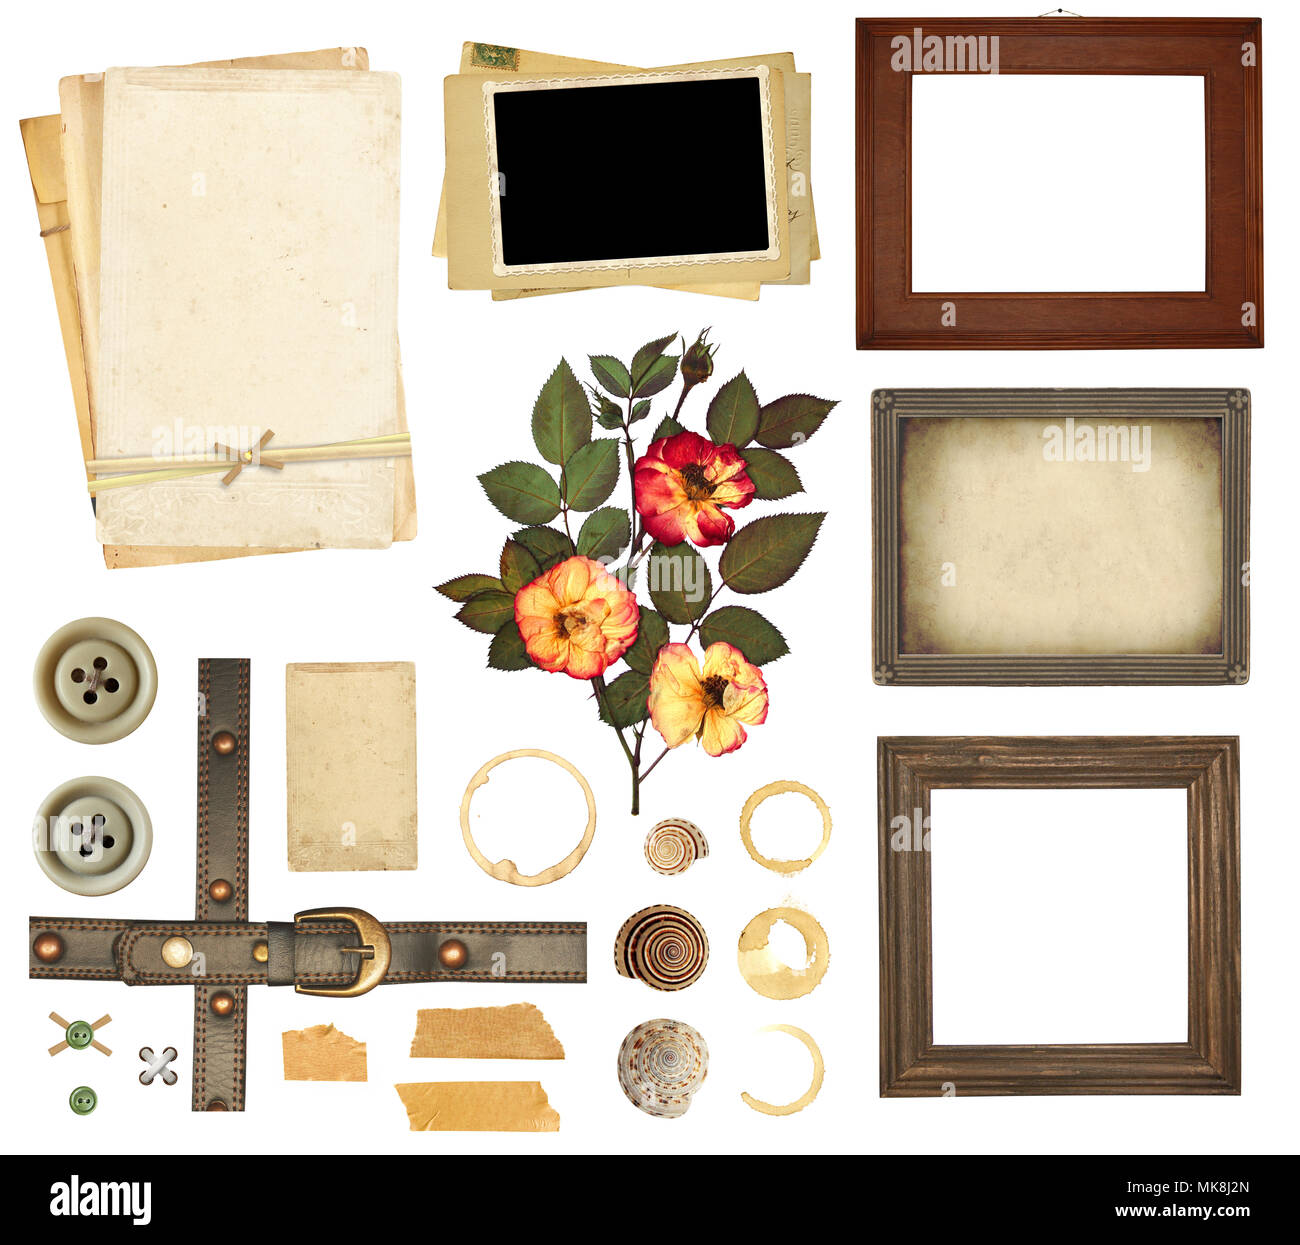 Set Of Elements For Scrapbooking Object Isolated On White